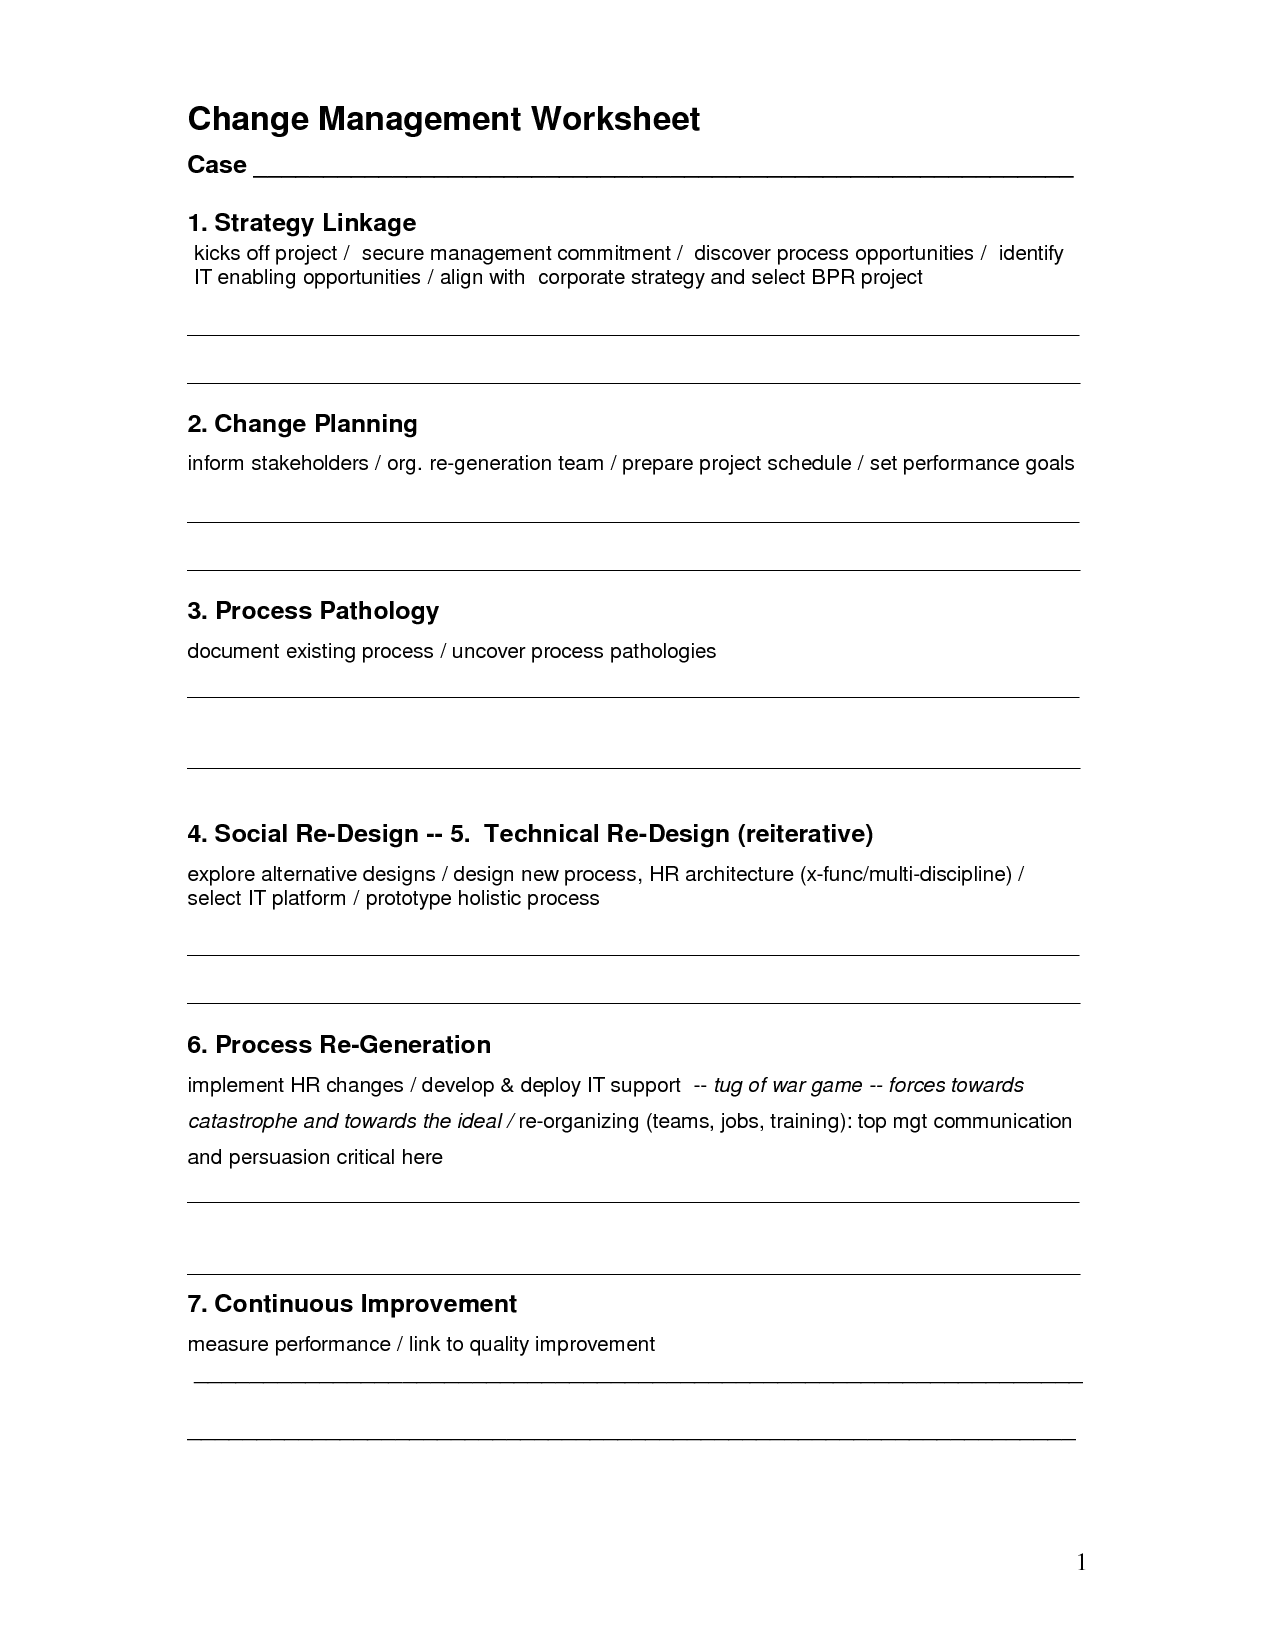 Change Plan Worksheet Substance Abuse